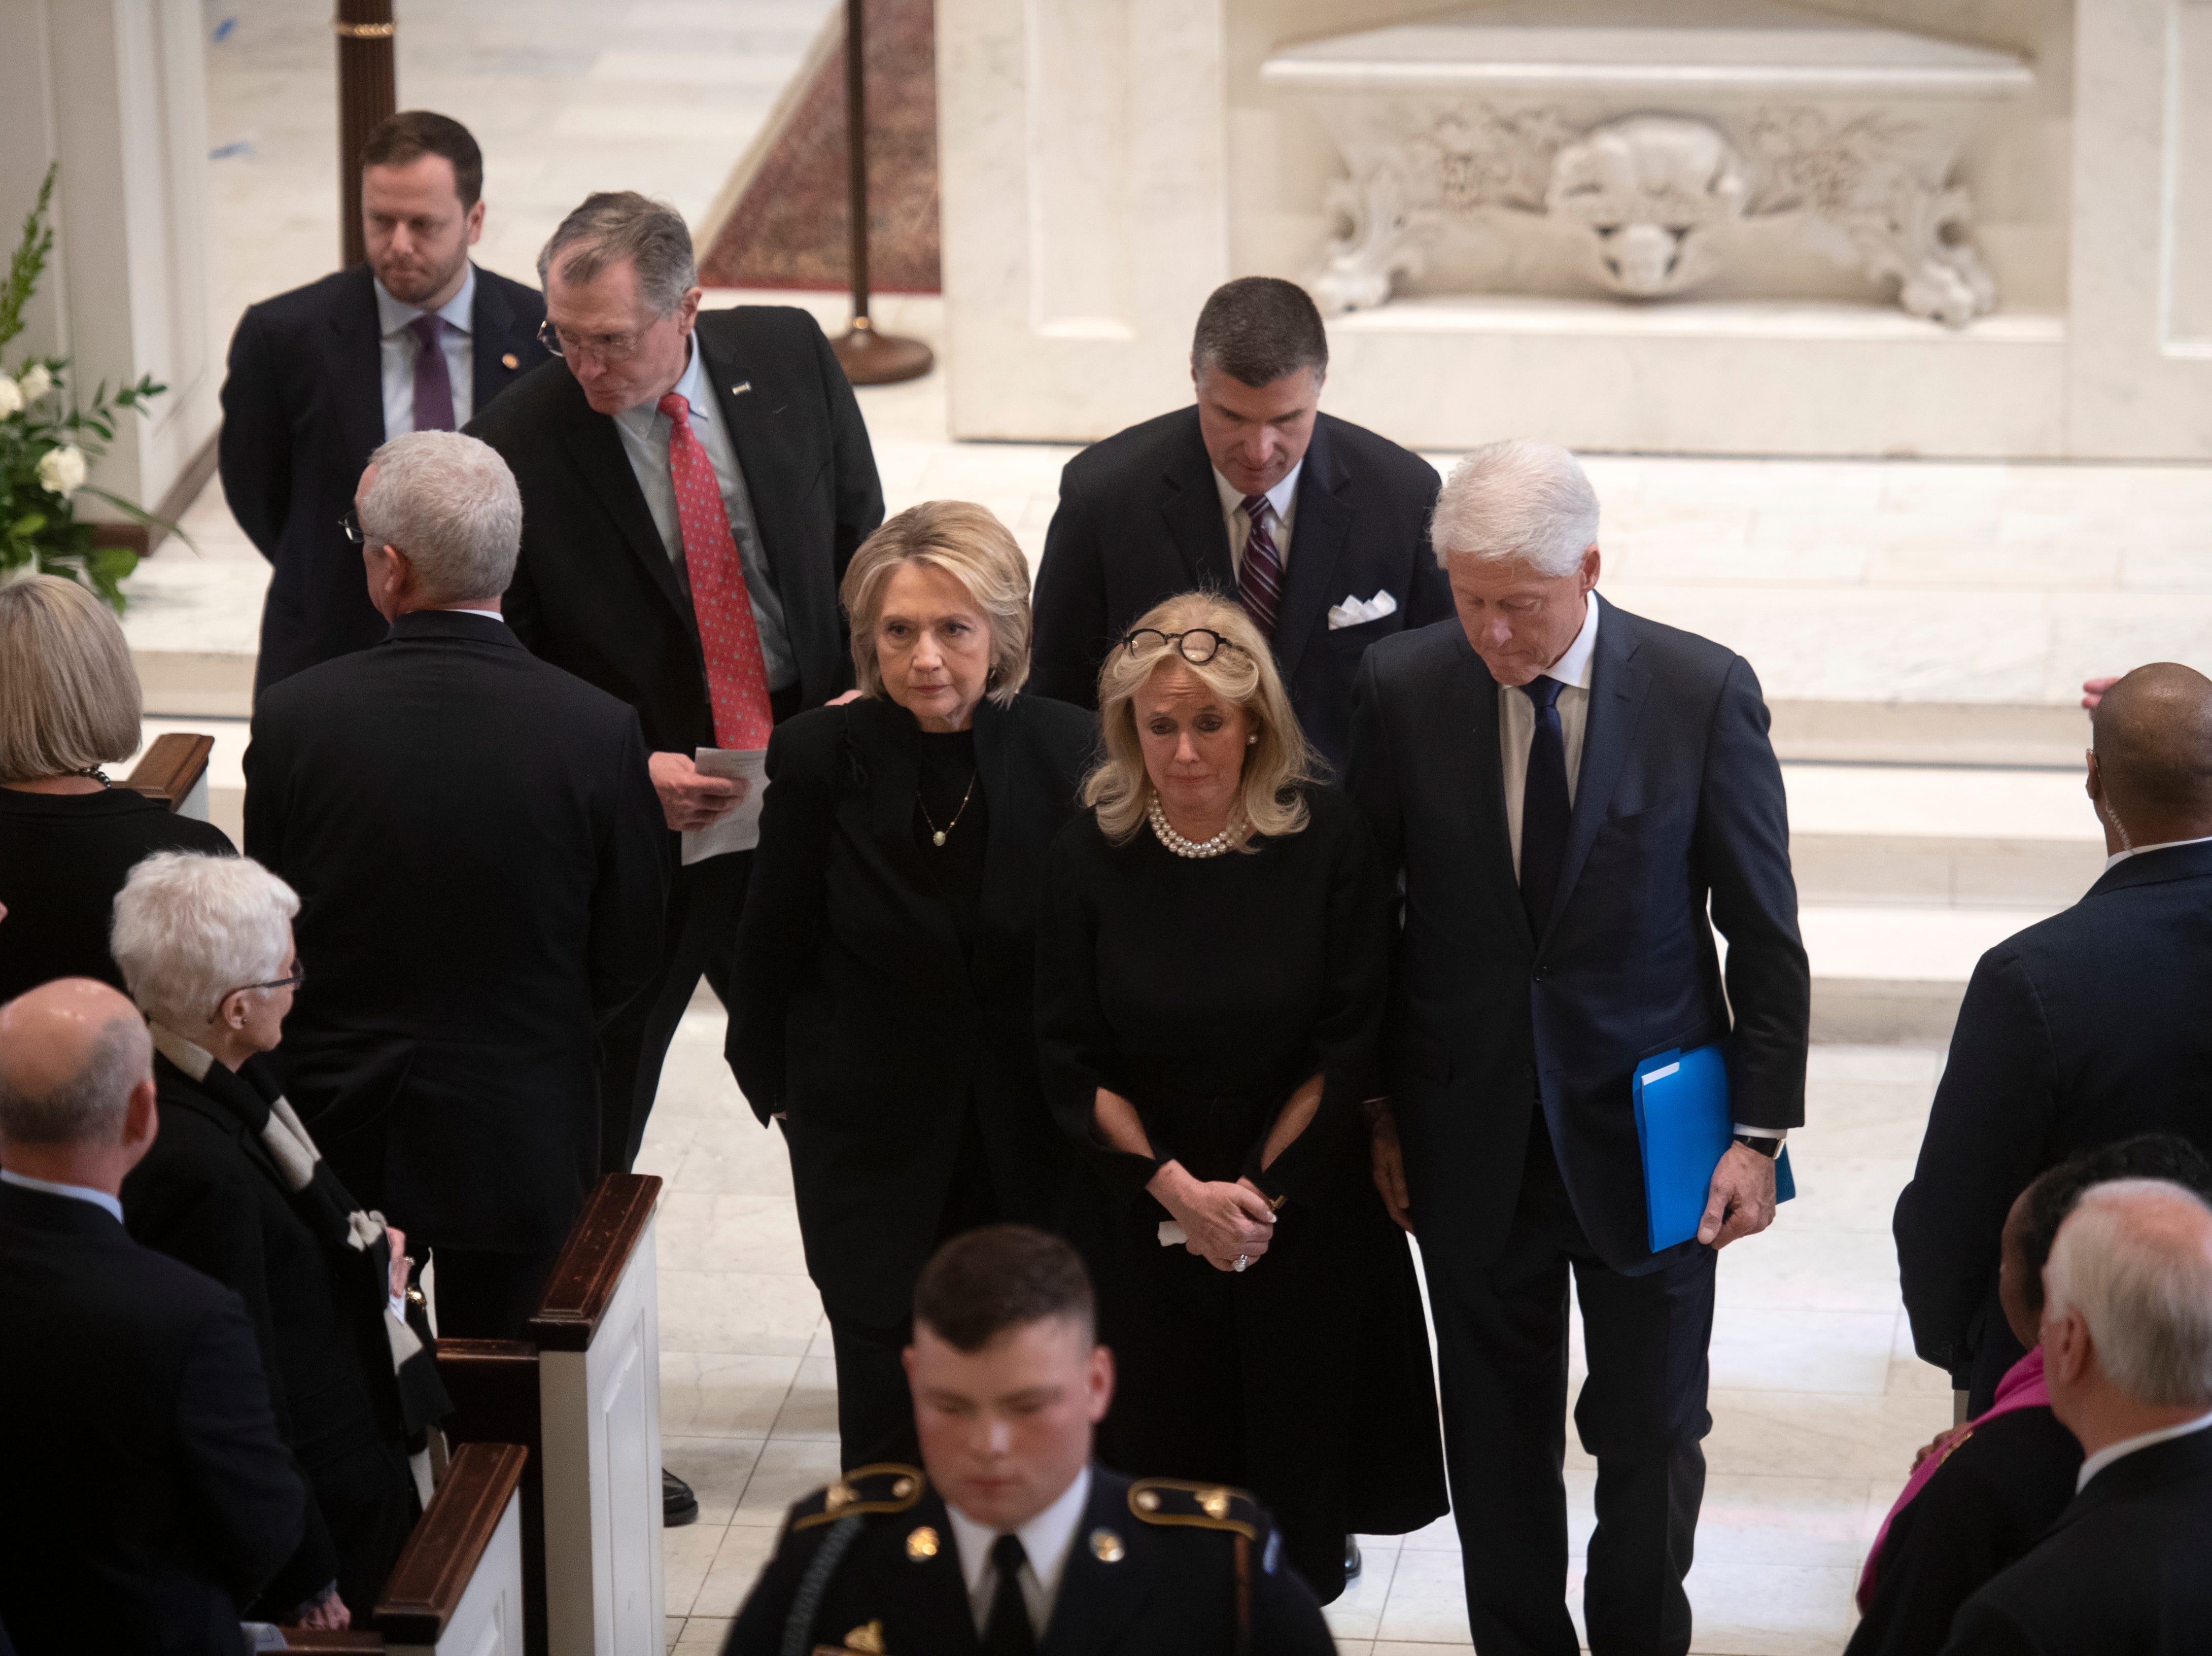 Rep. Debbie Dingell, D-Dearborn, departs the church with former President Bill Clinton and former Secretary of State Hillary Clinton at the conclusion of the funeral for her husband, former Rep. John Dingell.